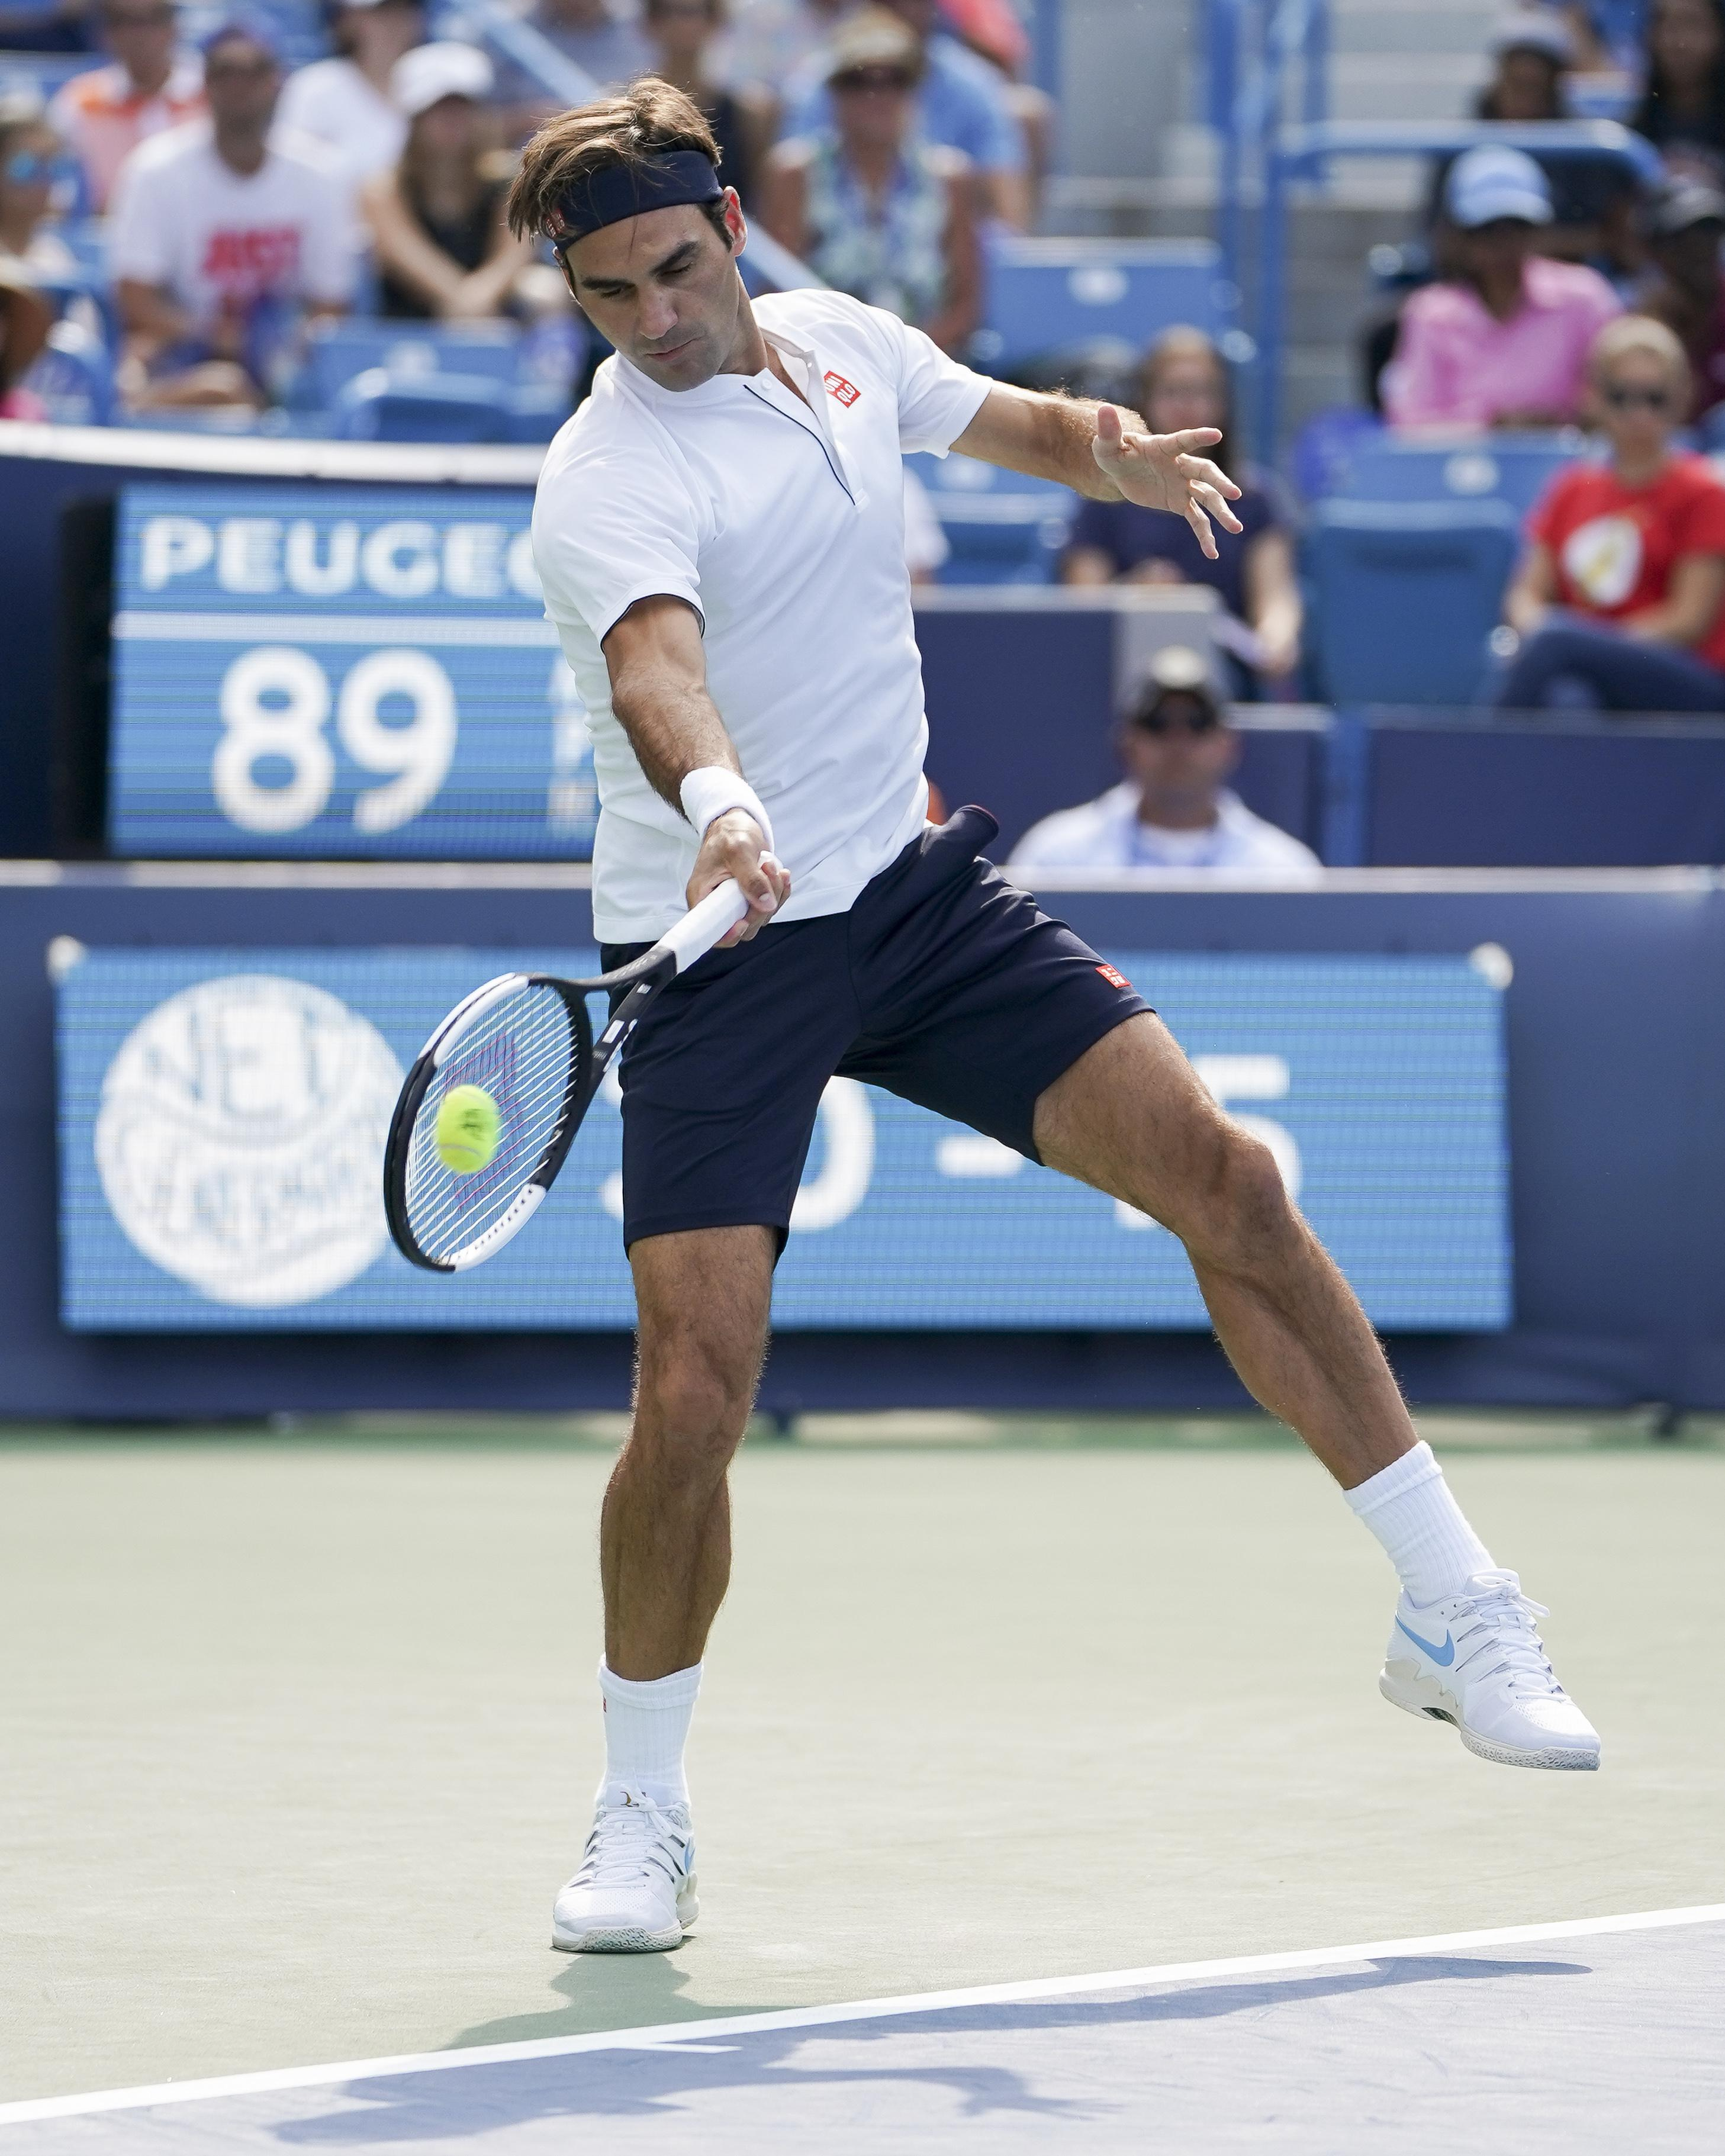 Djokovic had Federer on the back foot from the outset